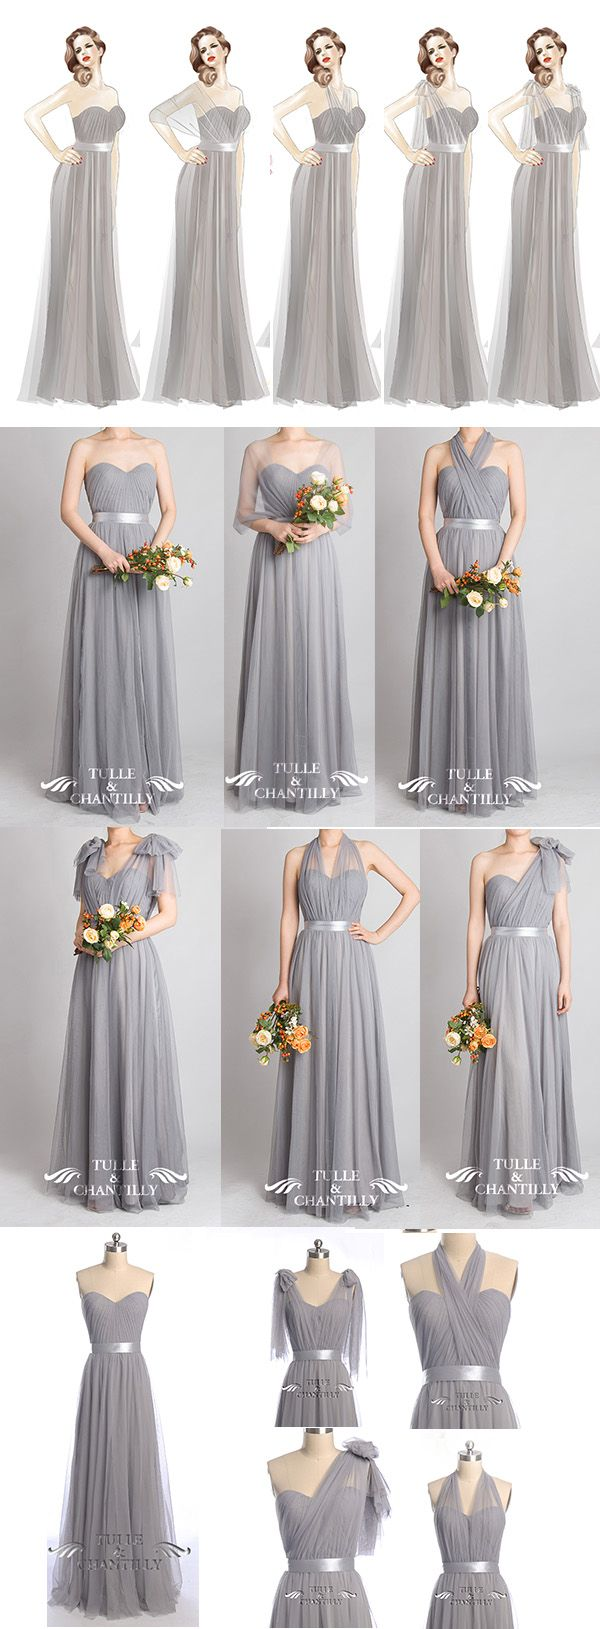 Tulle Convertible Multi-wear Bridesmaid Dress TBQP307